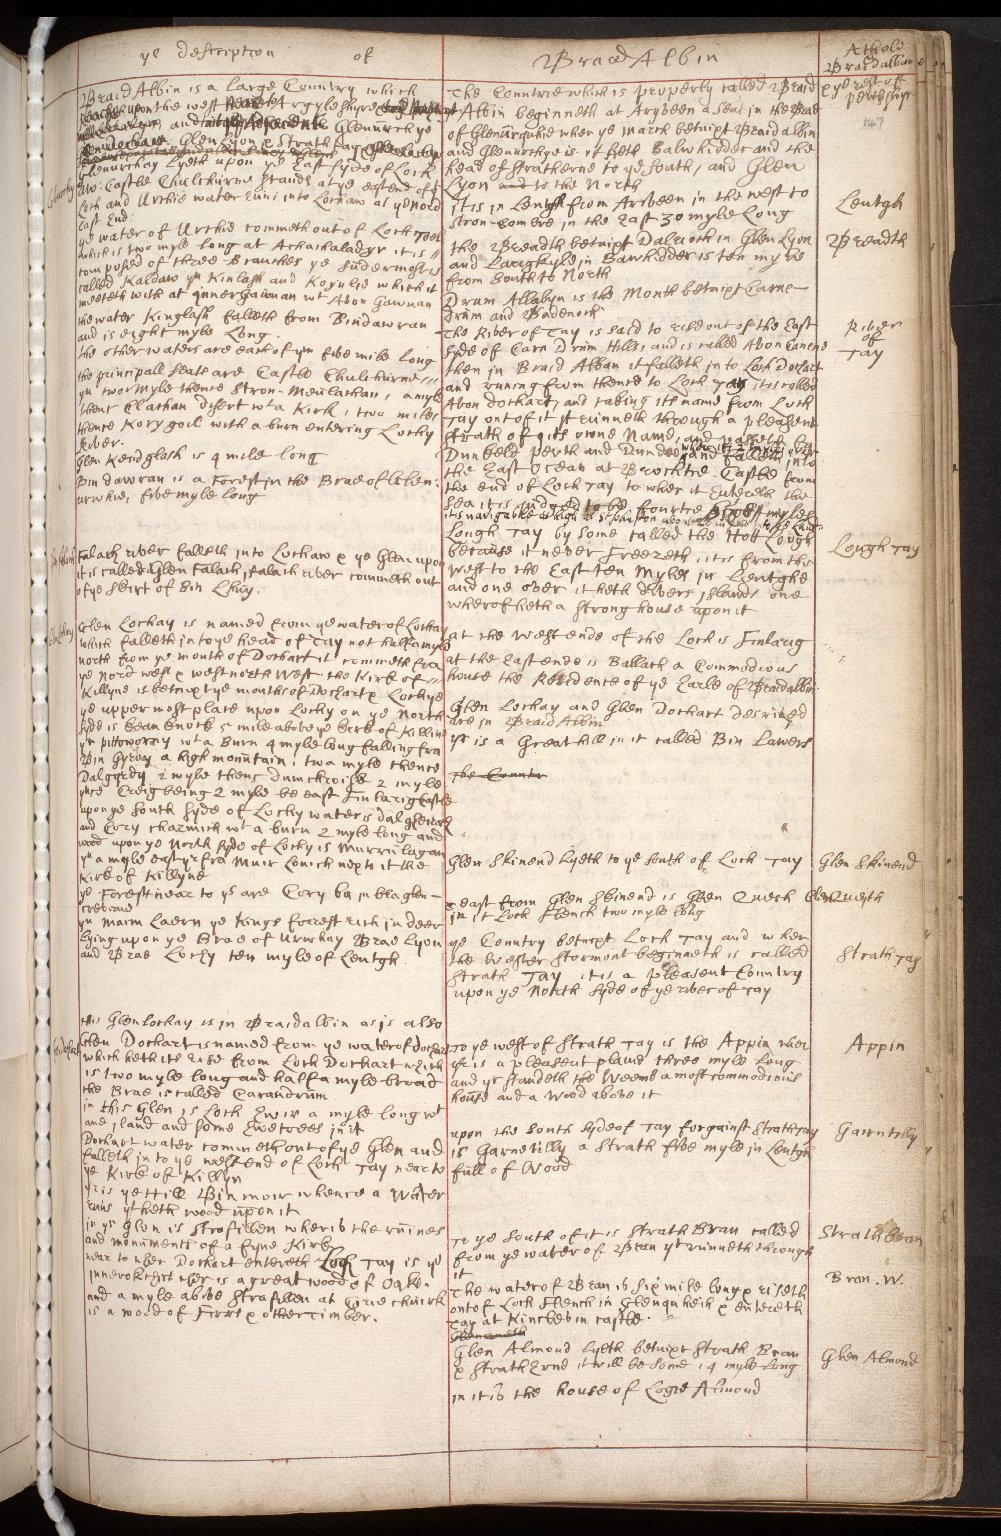 Atlas Scoticus, or a Description of Scotland Ancient and Modern. [171 of 259]